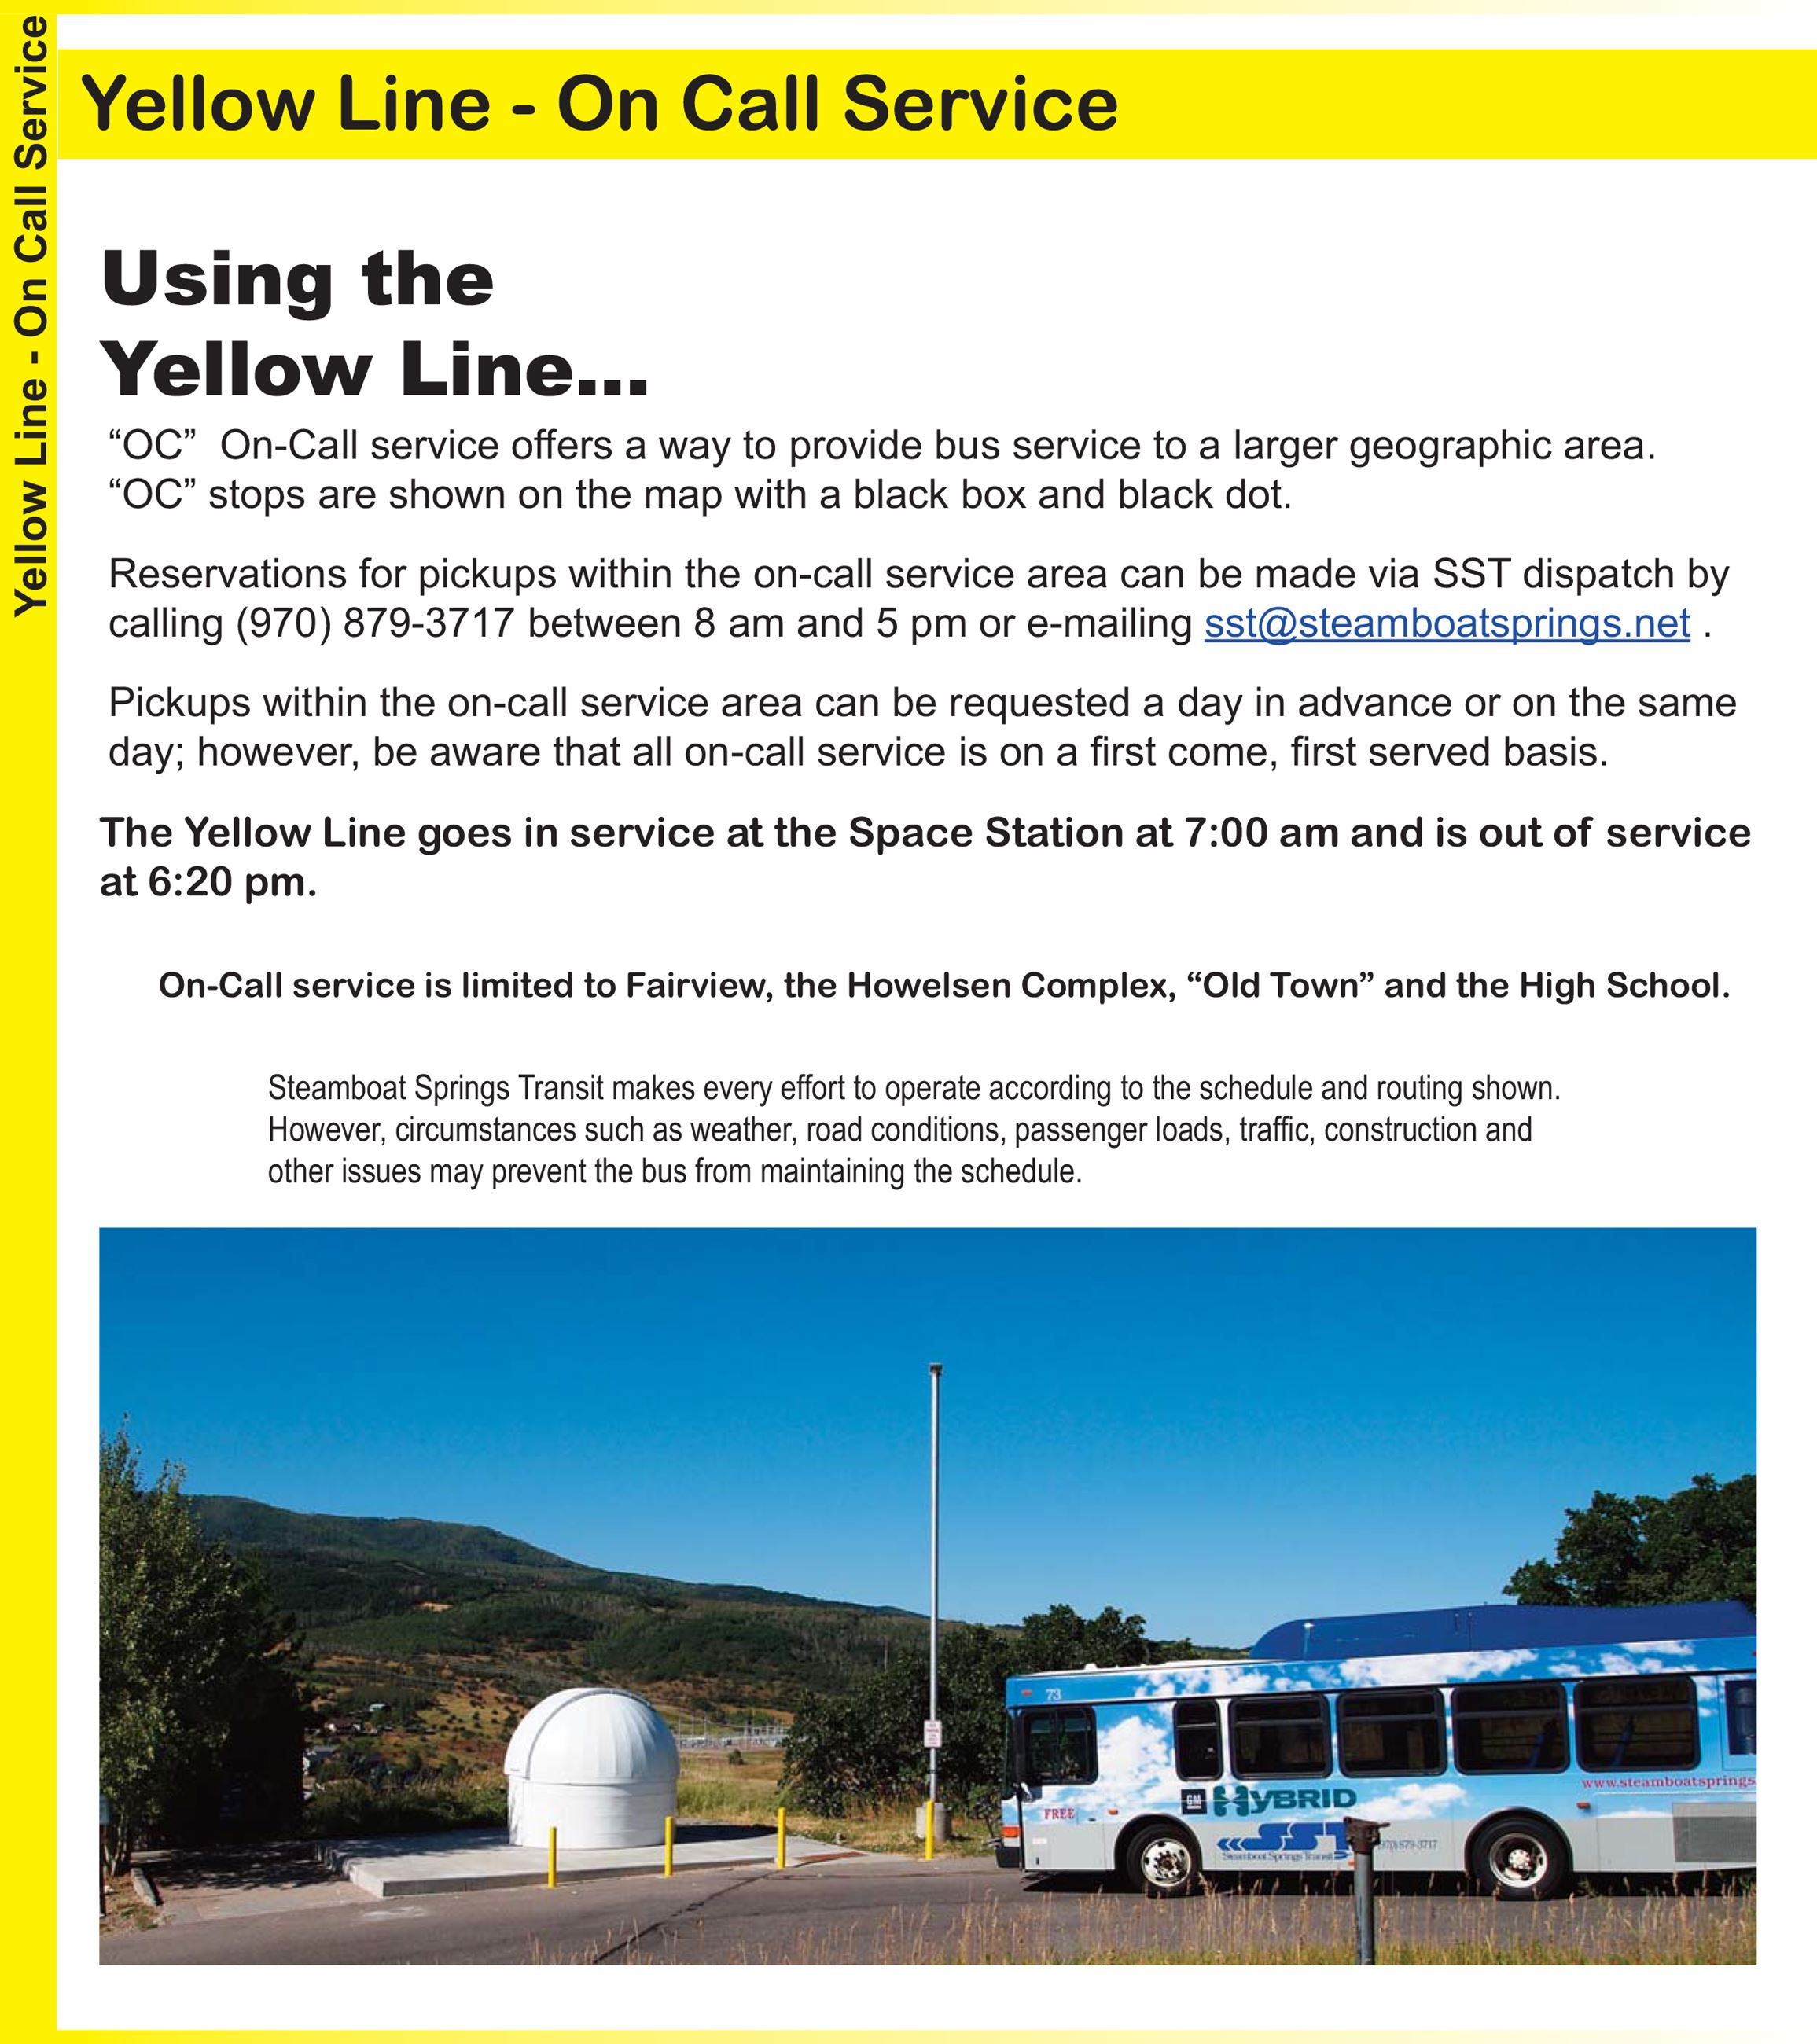 steamboat springs transit steamboat springs co official website steamboat springs transit steamboat